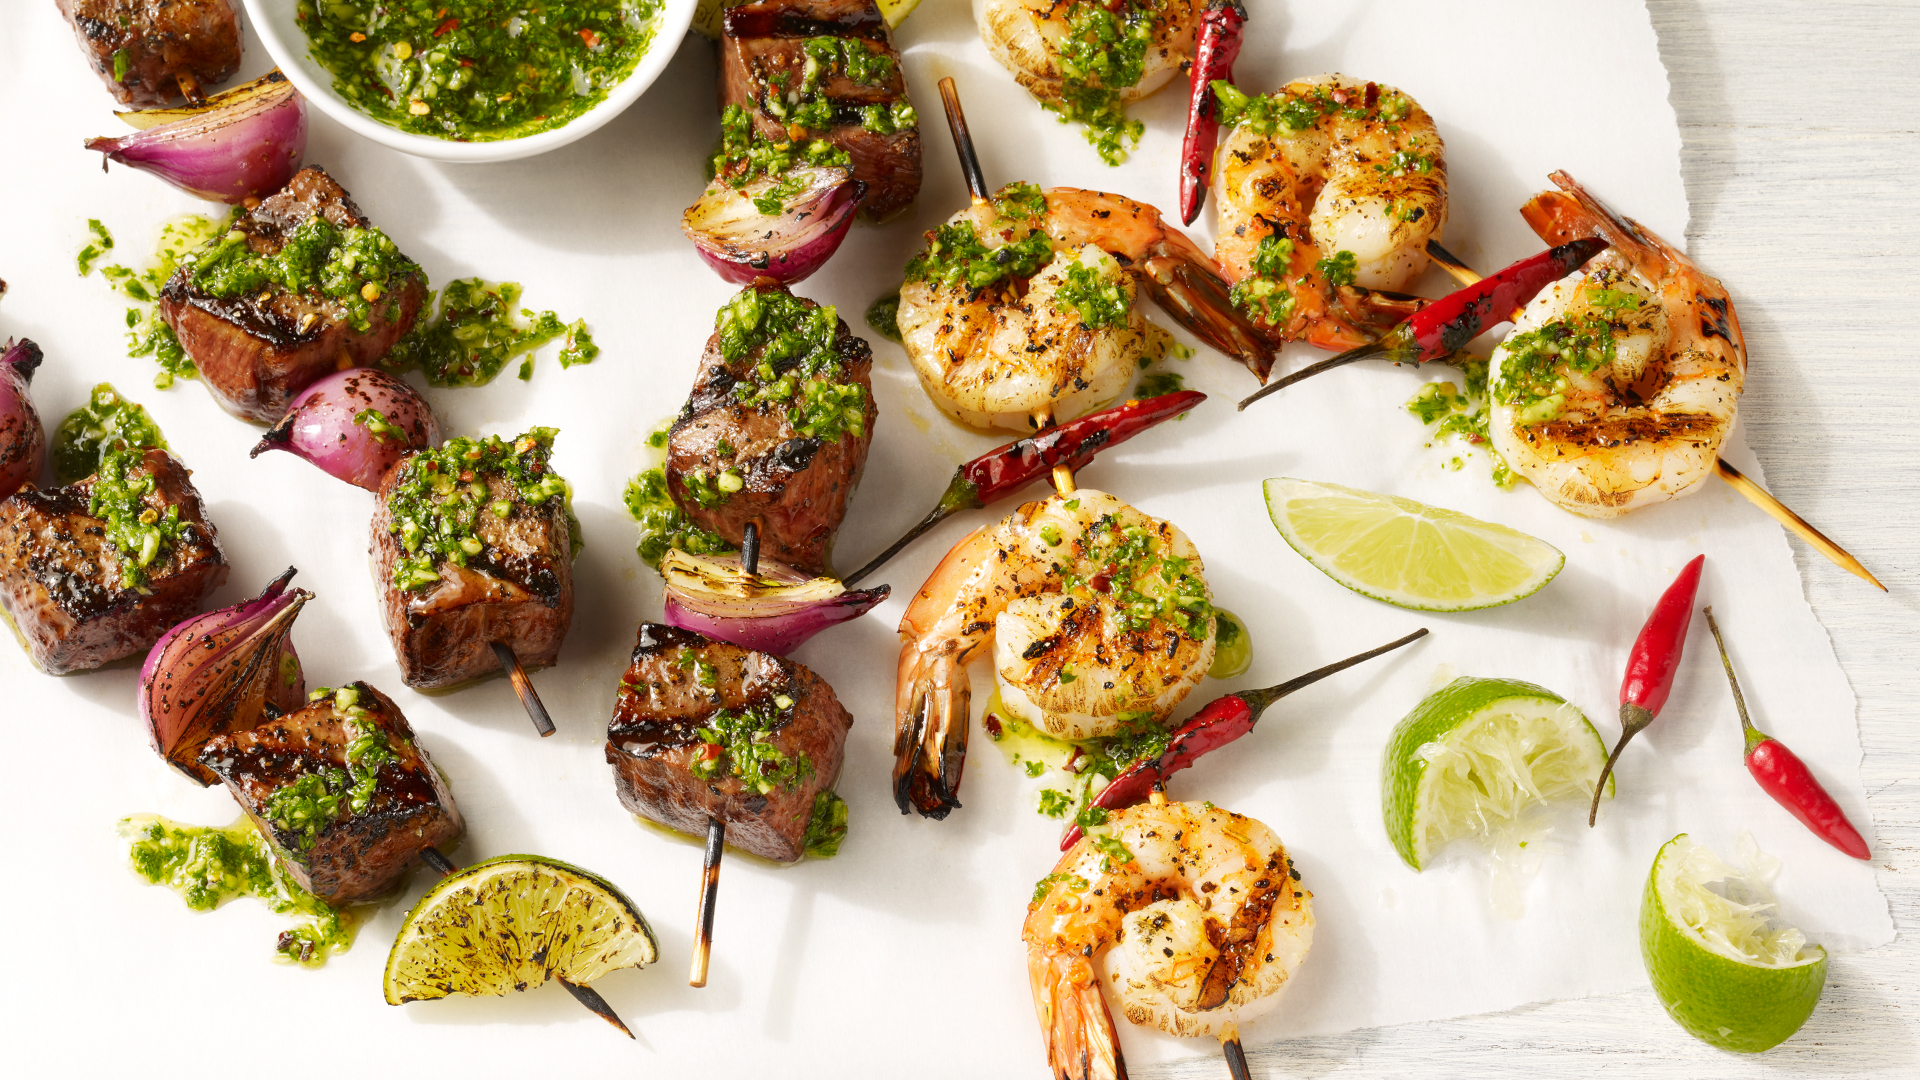 Hill_Steak_ShrimpKabobs